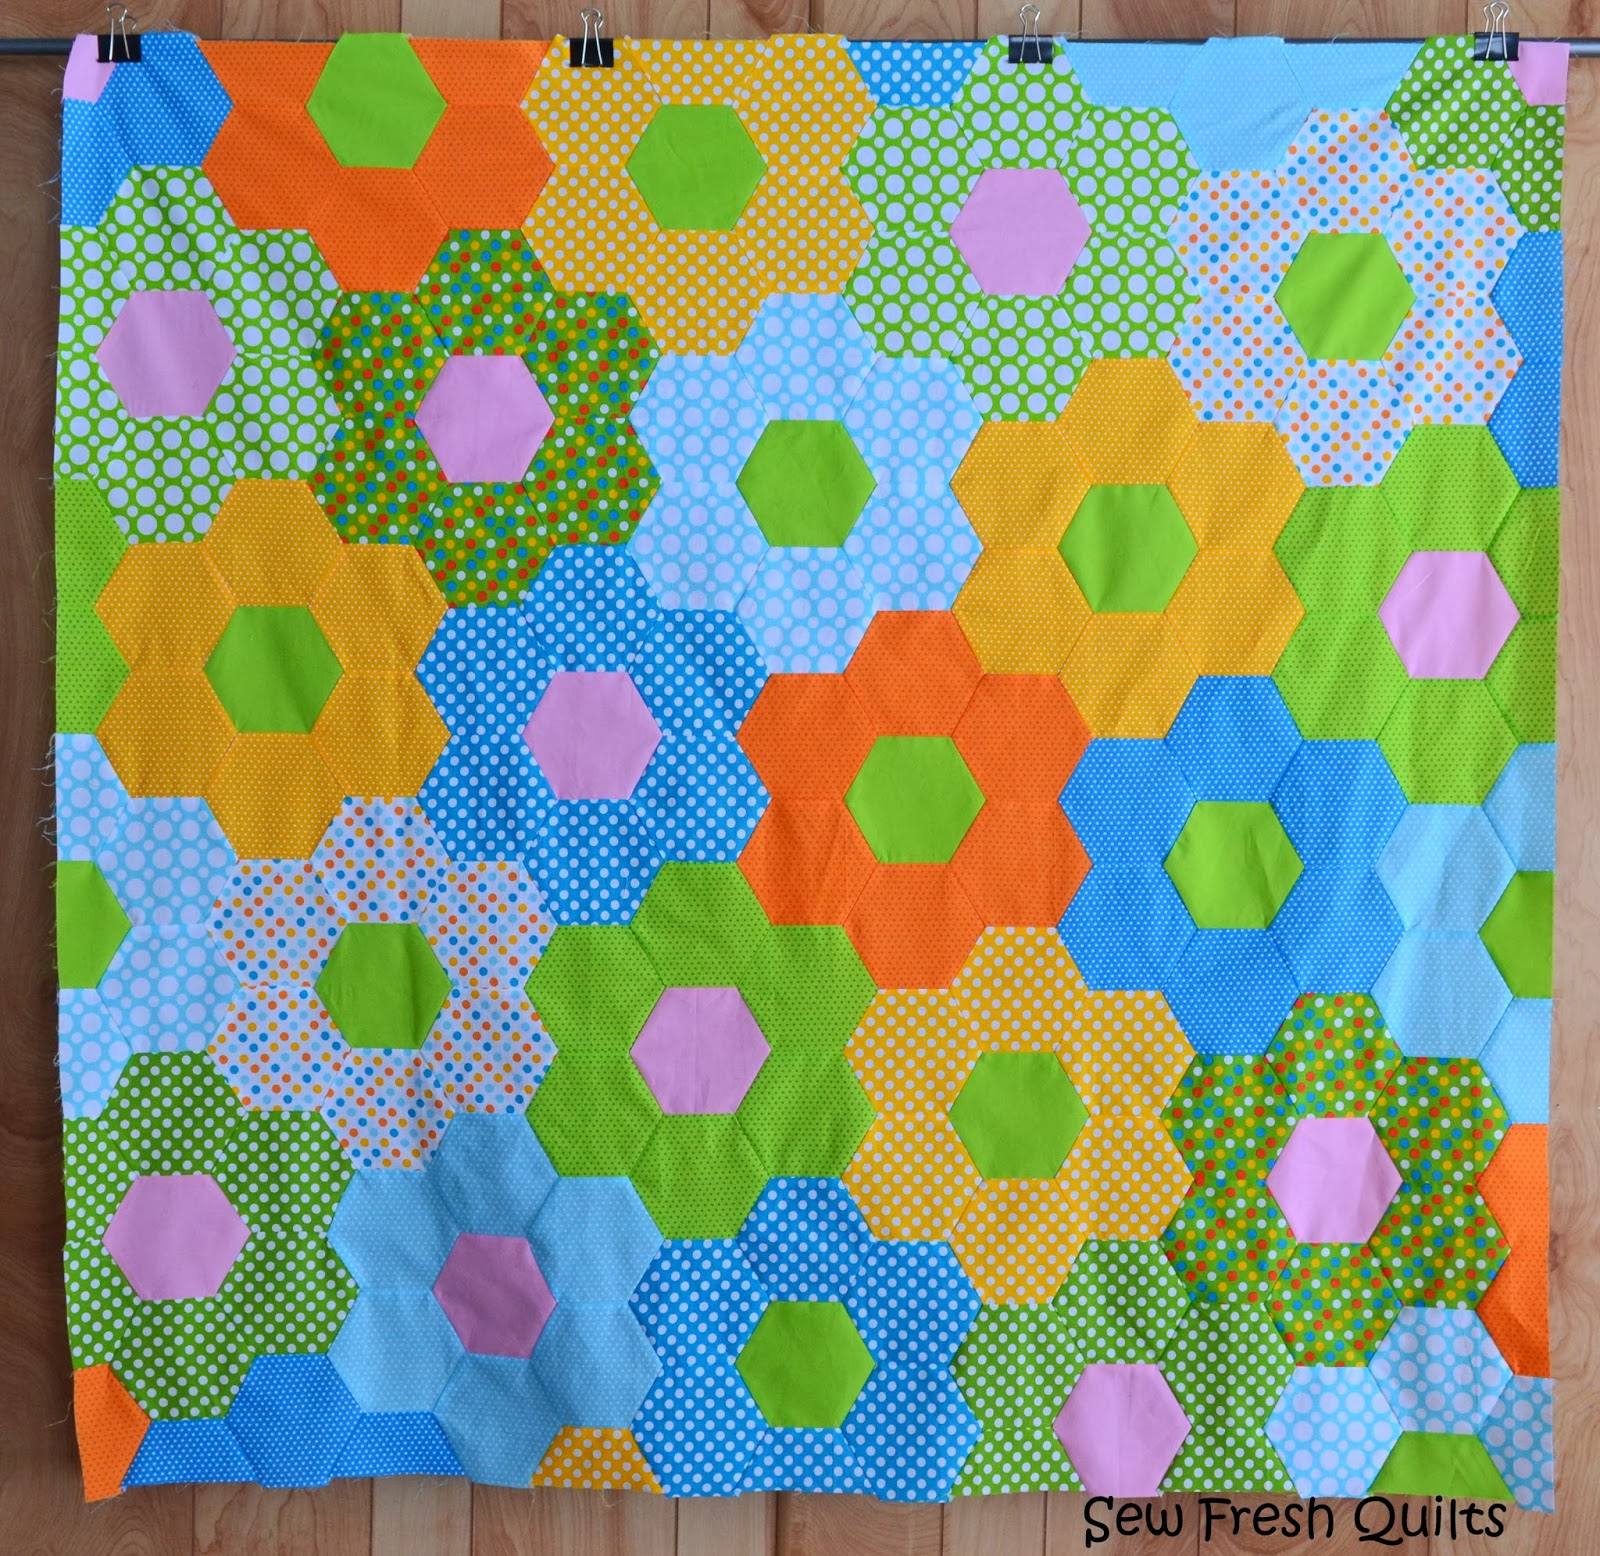 Sew Fresh Quilts: Tutorial for Sewing Hexagons by Machine